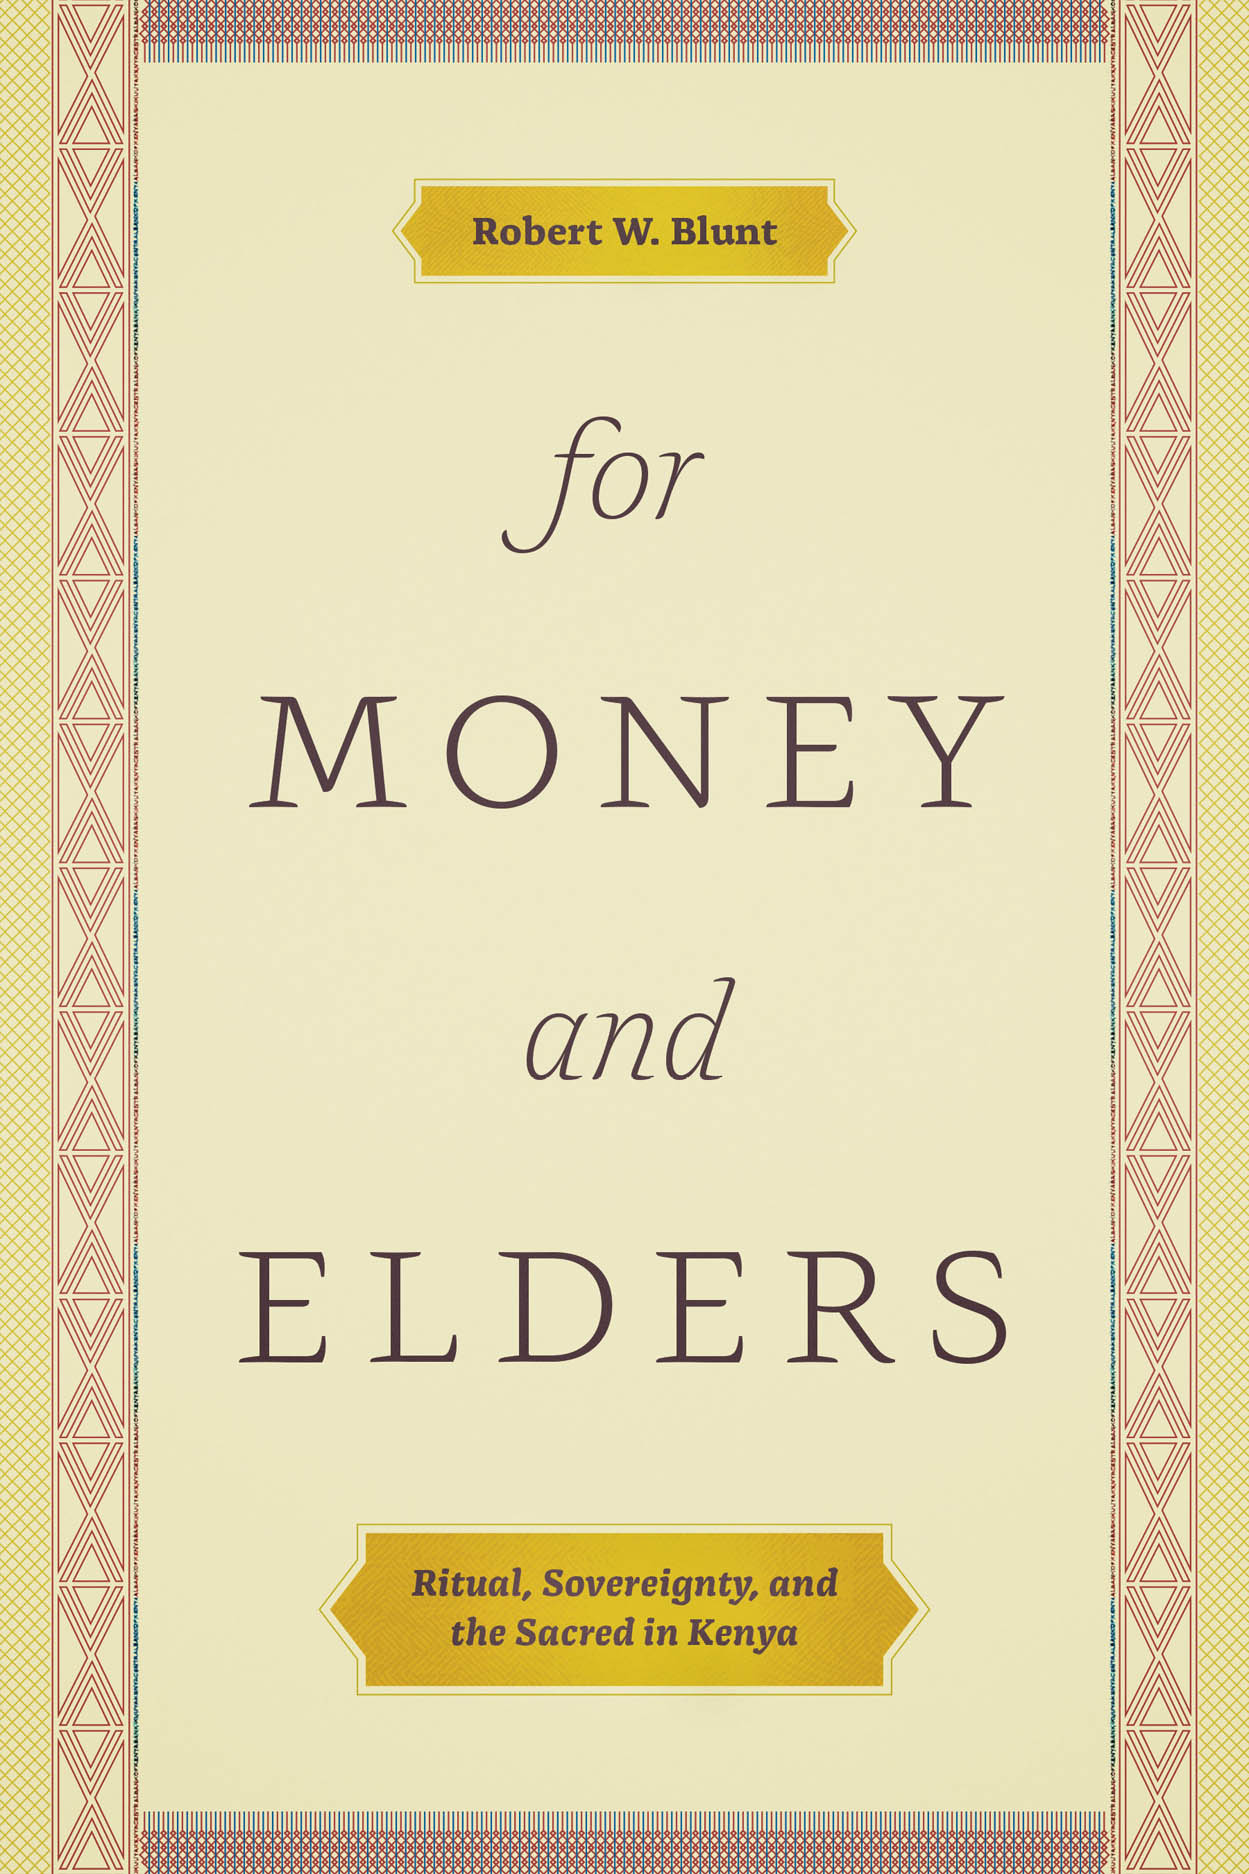 For Money and Elders: Ritual, Sovereignty, and the Sacred in Kenya